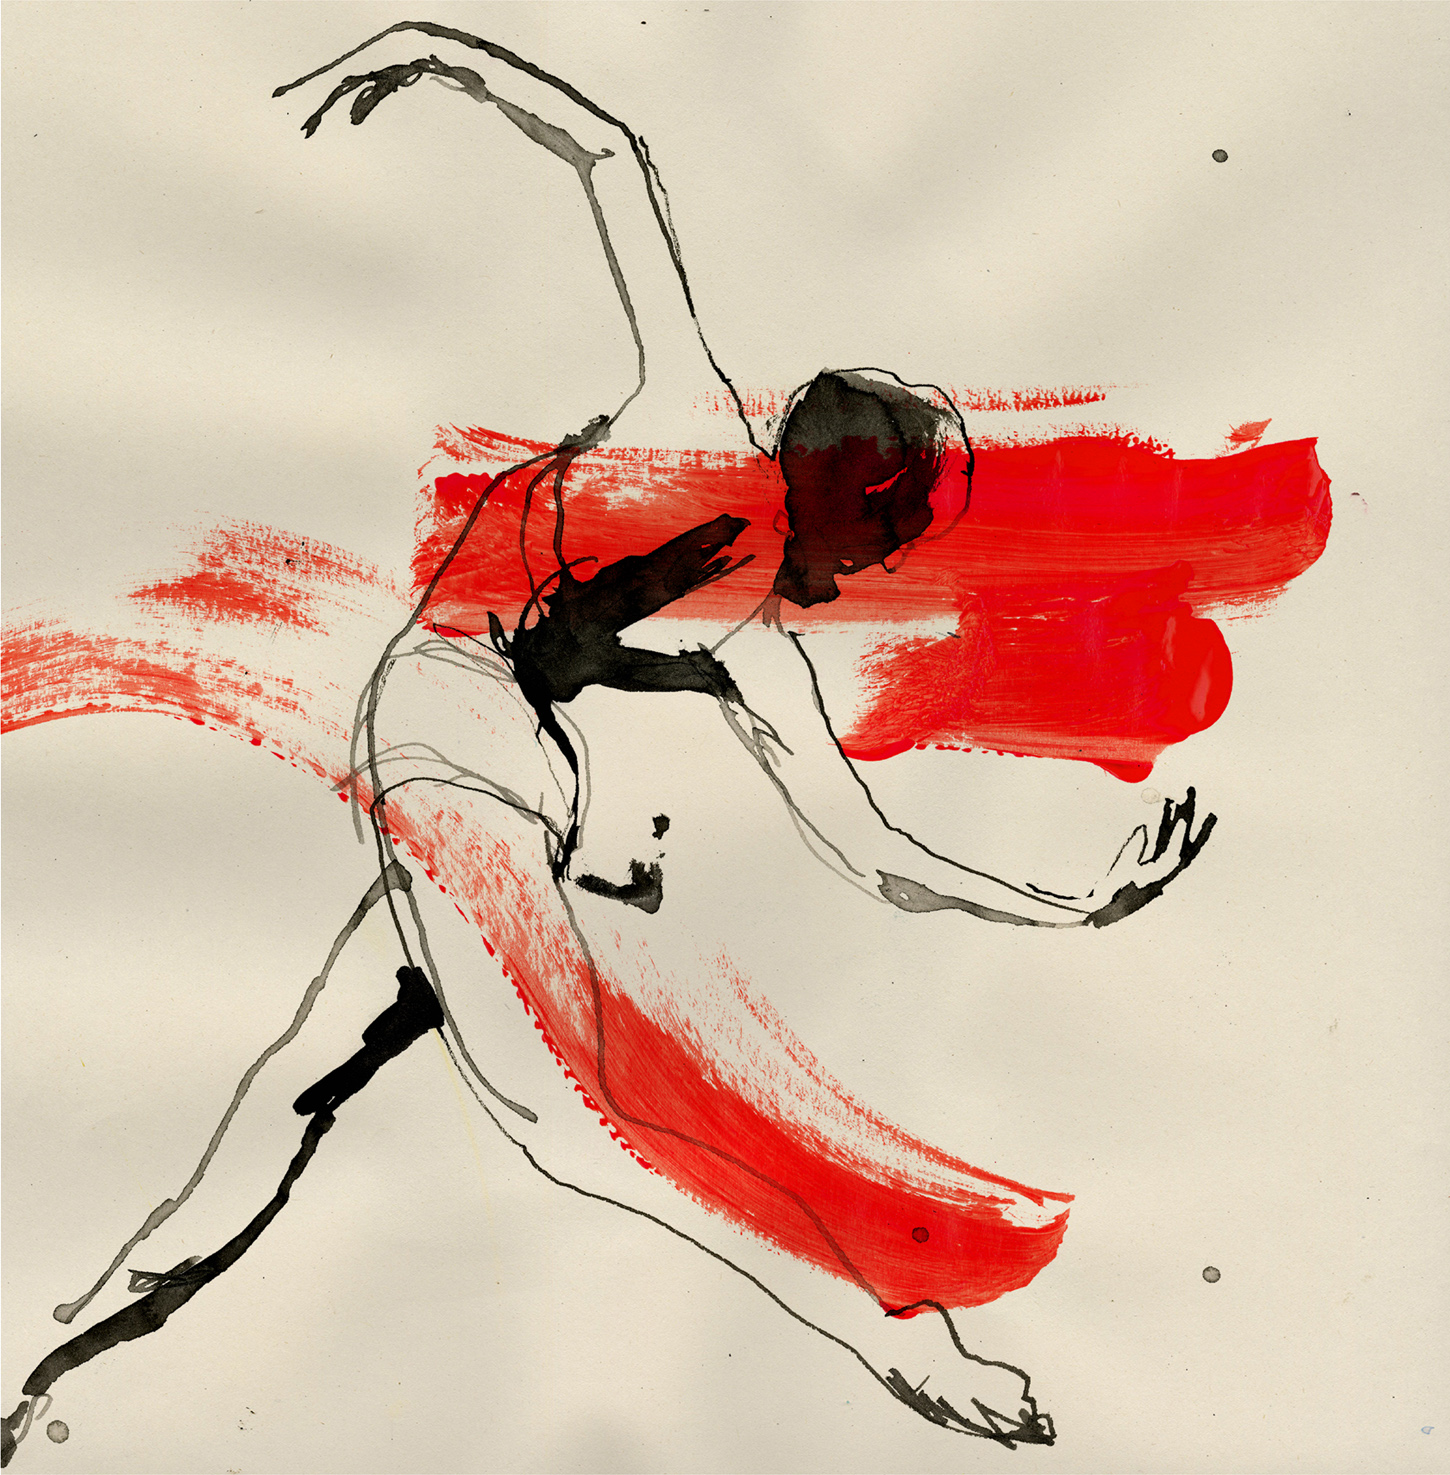 stina-persson-ink-moce-dance-wear-red.jpg